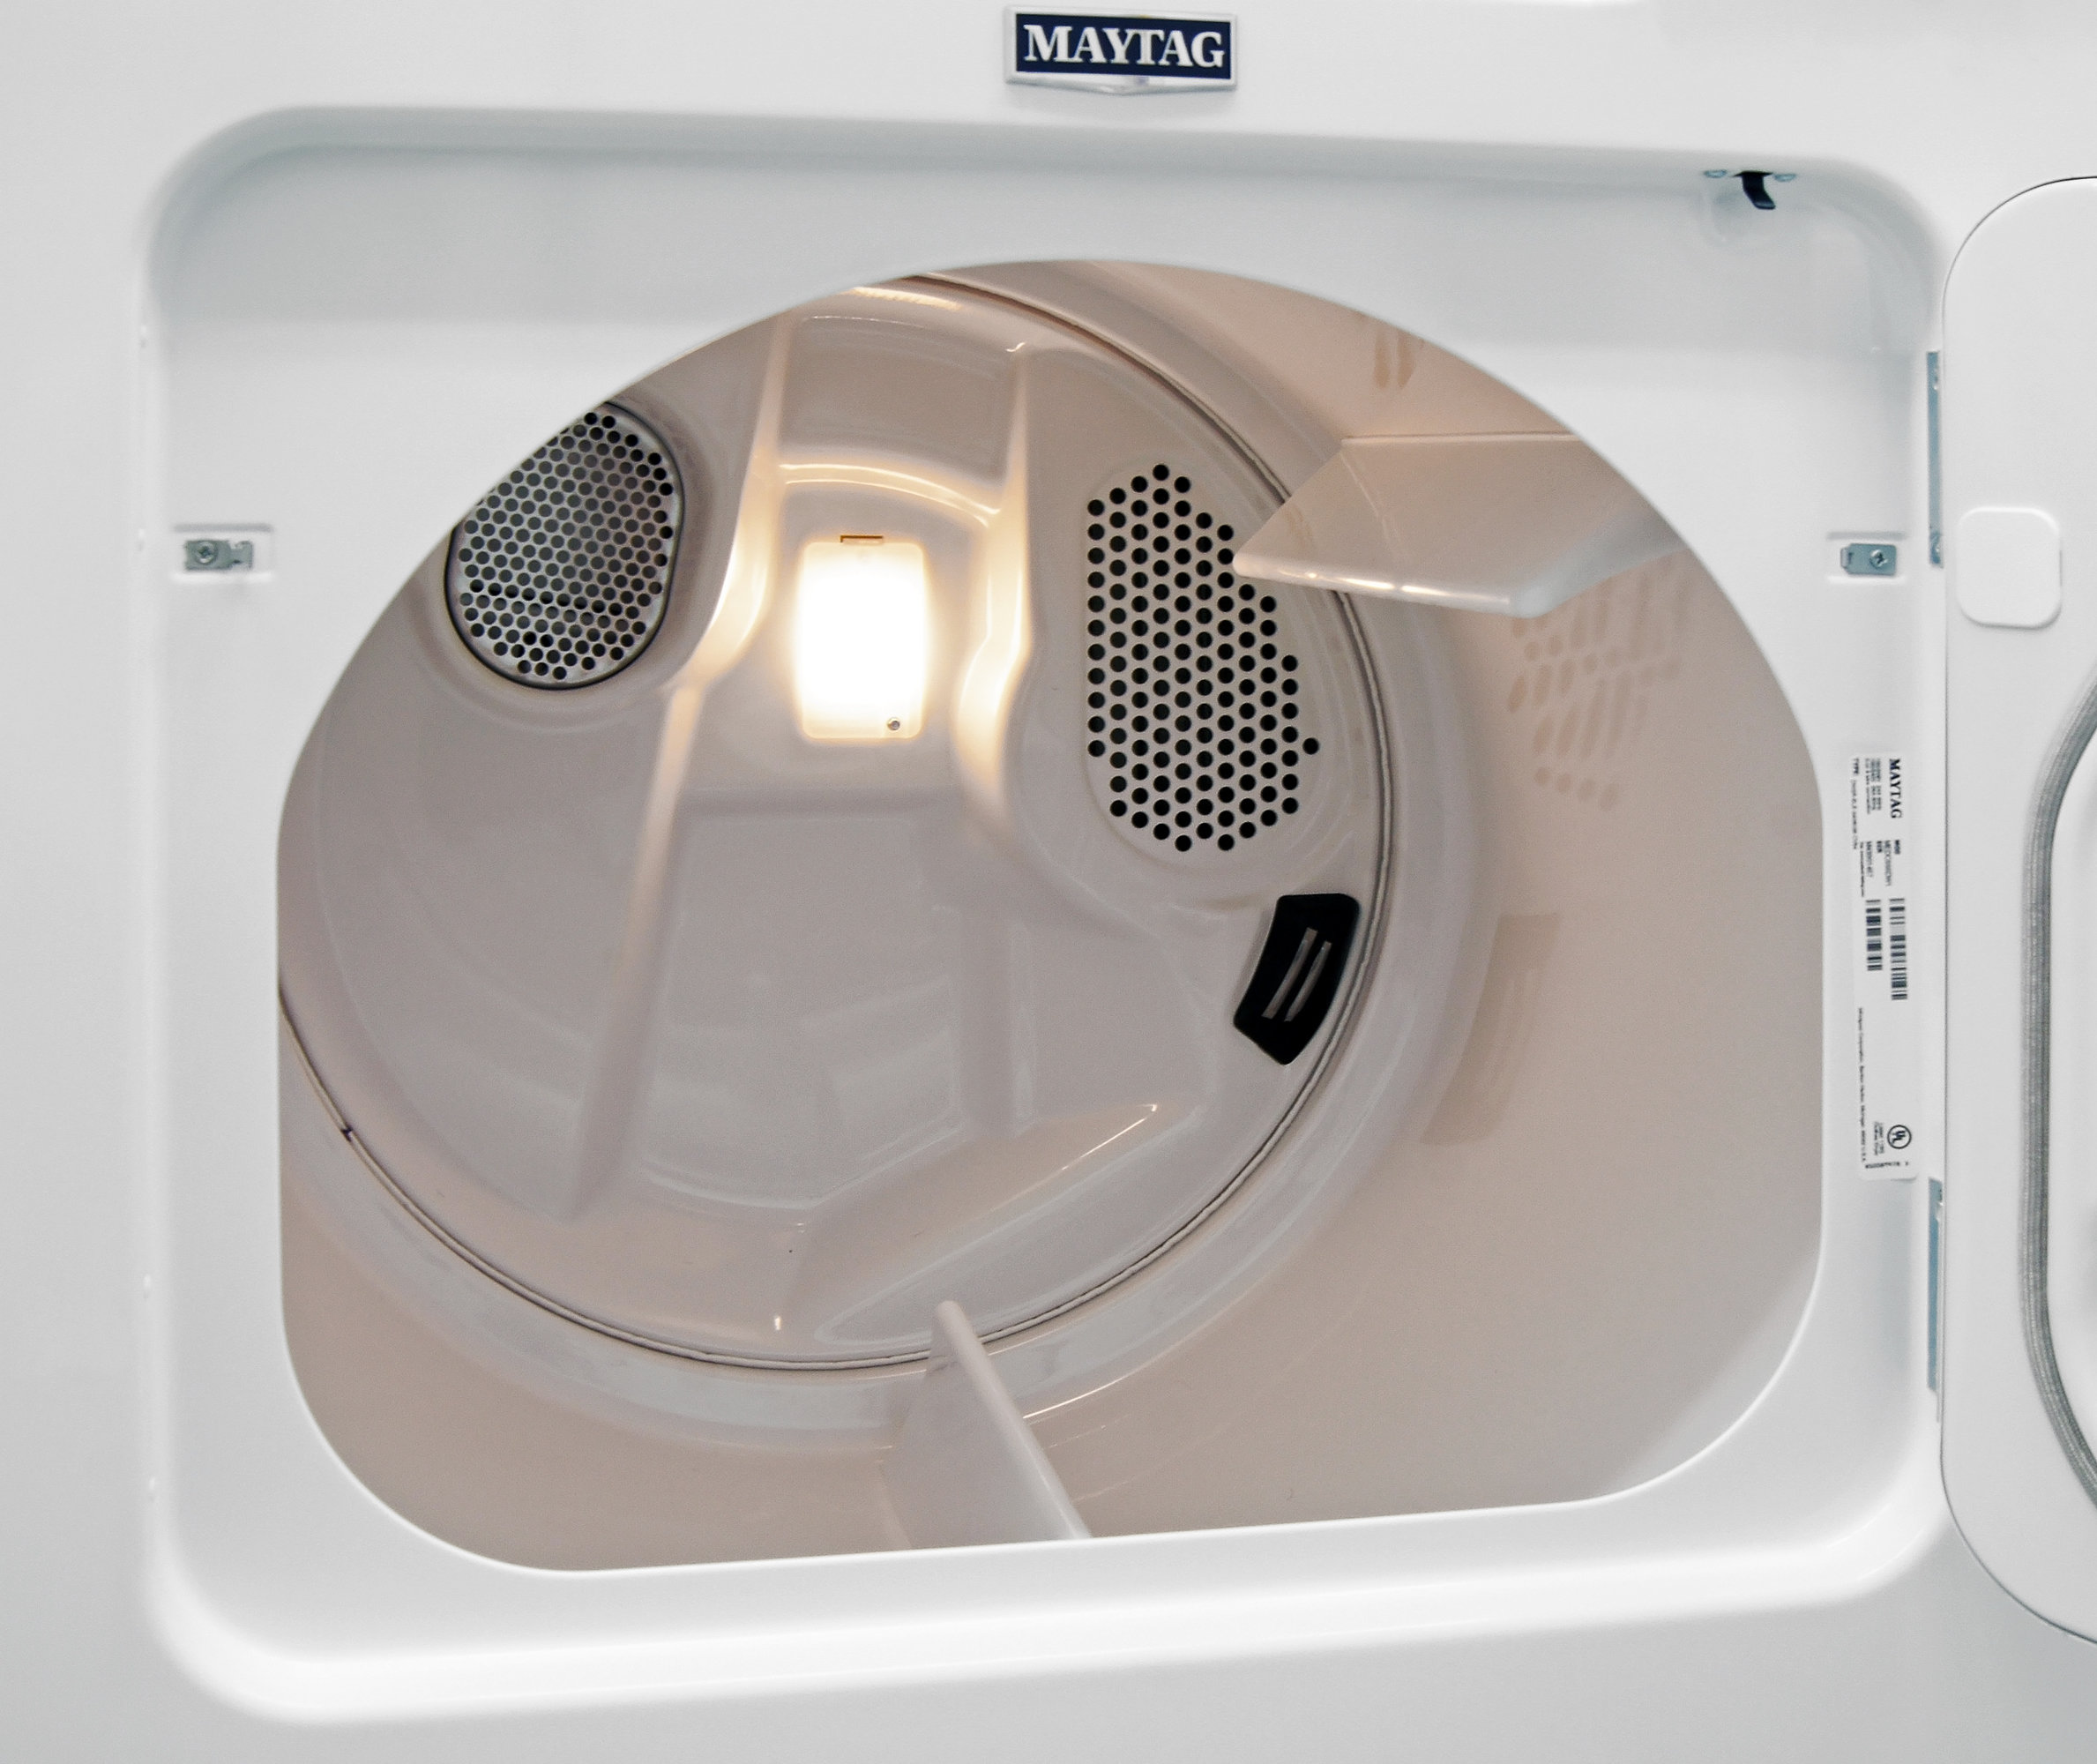 maytag centennial medc555dw dryer review laundry. Black Bedroom Furniture Sets. Home Design Ideas